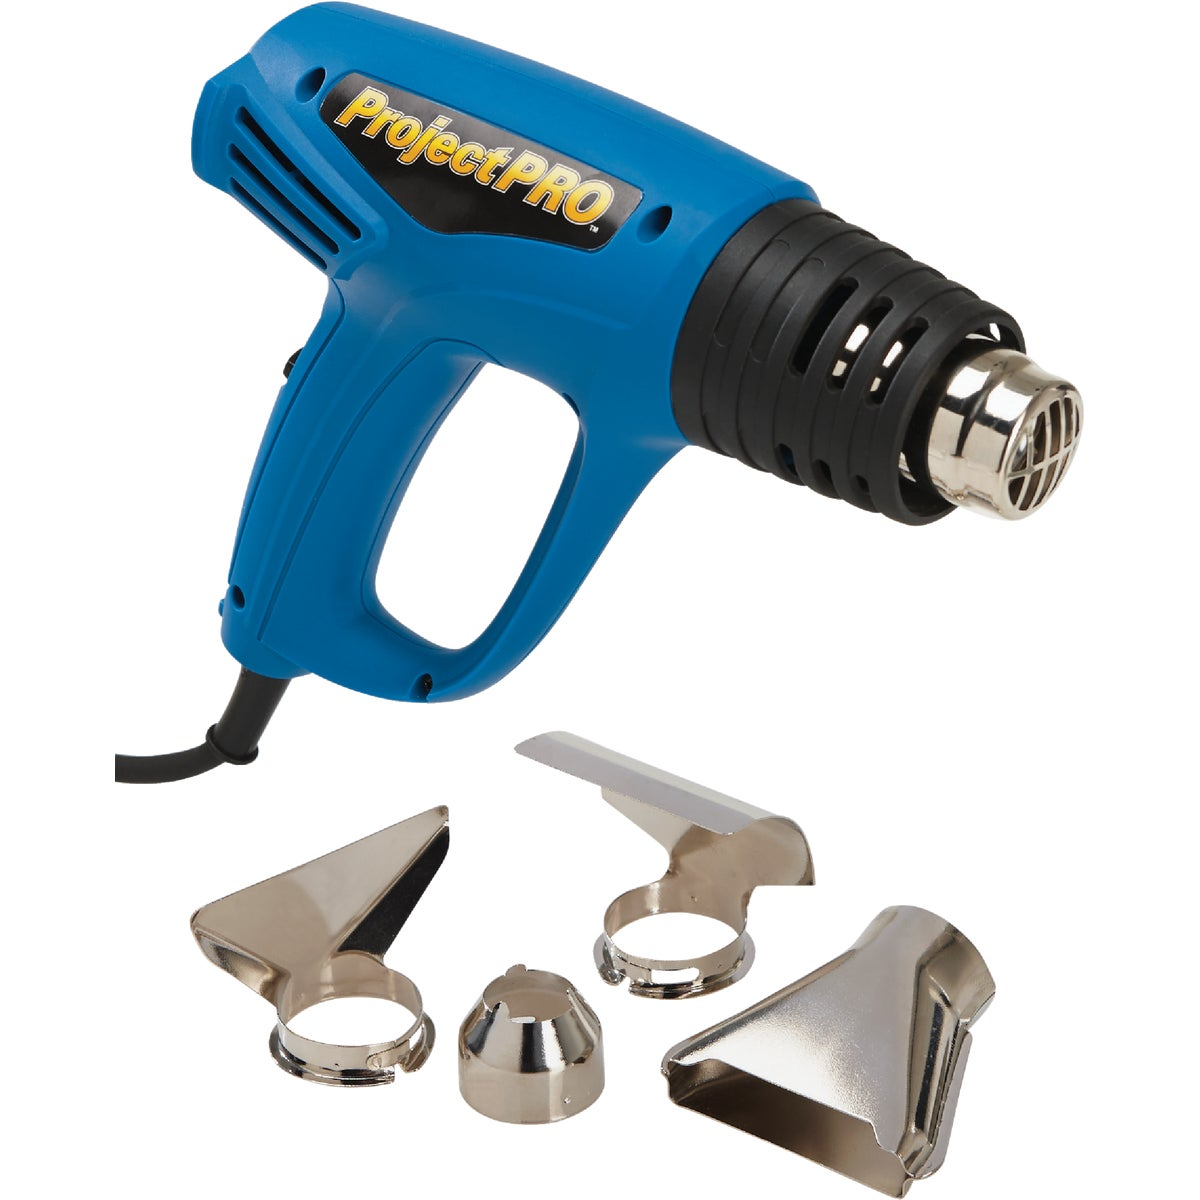 HEAT GUN - 339921 by Do it Best